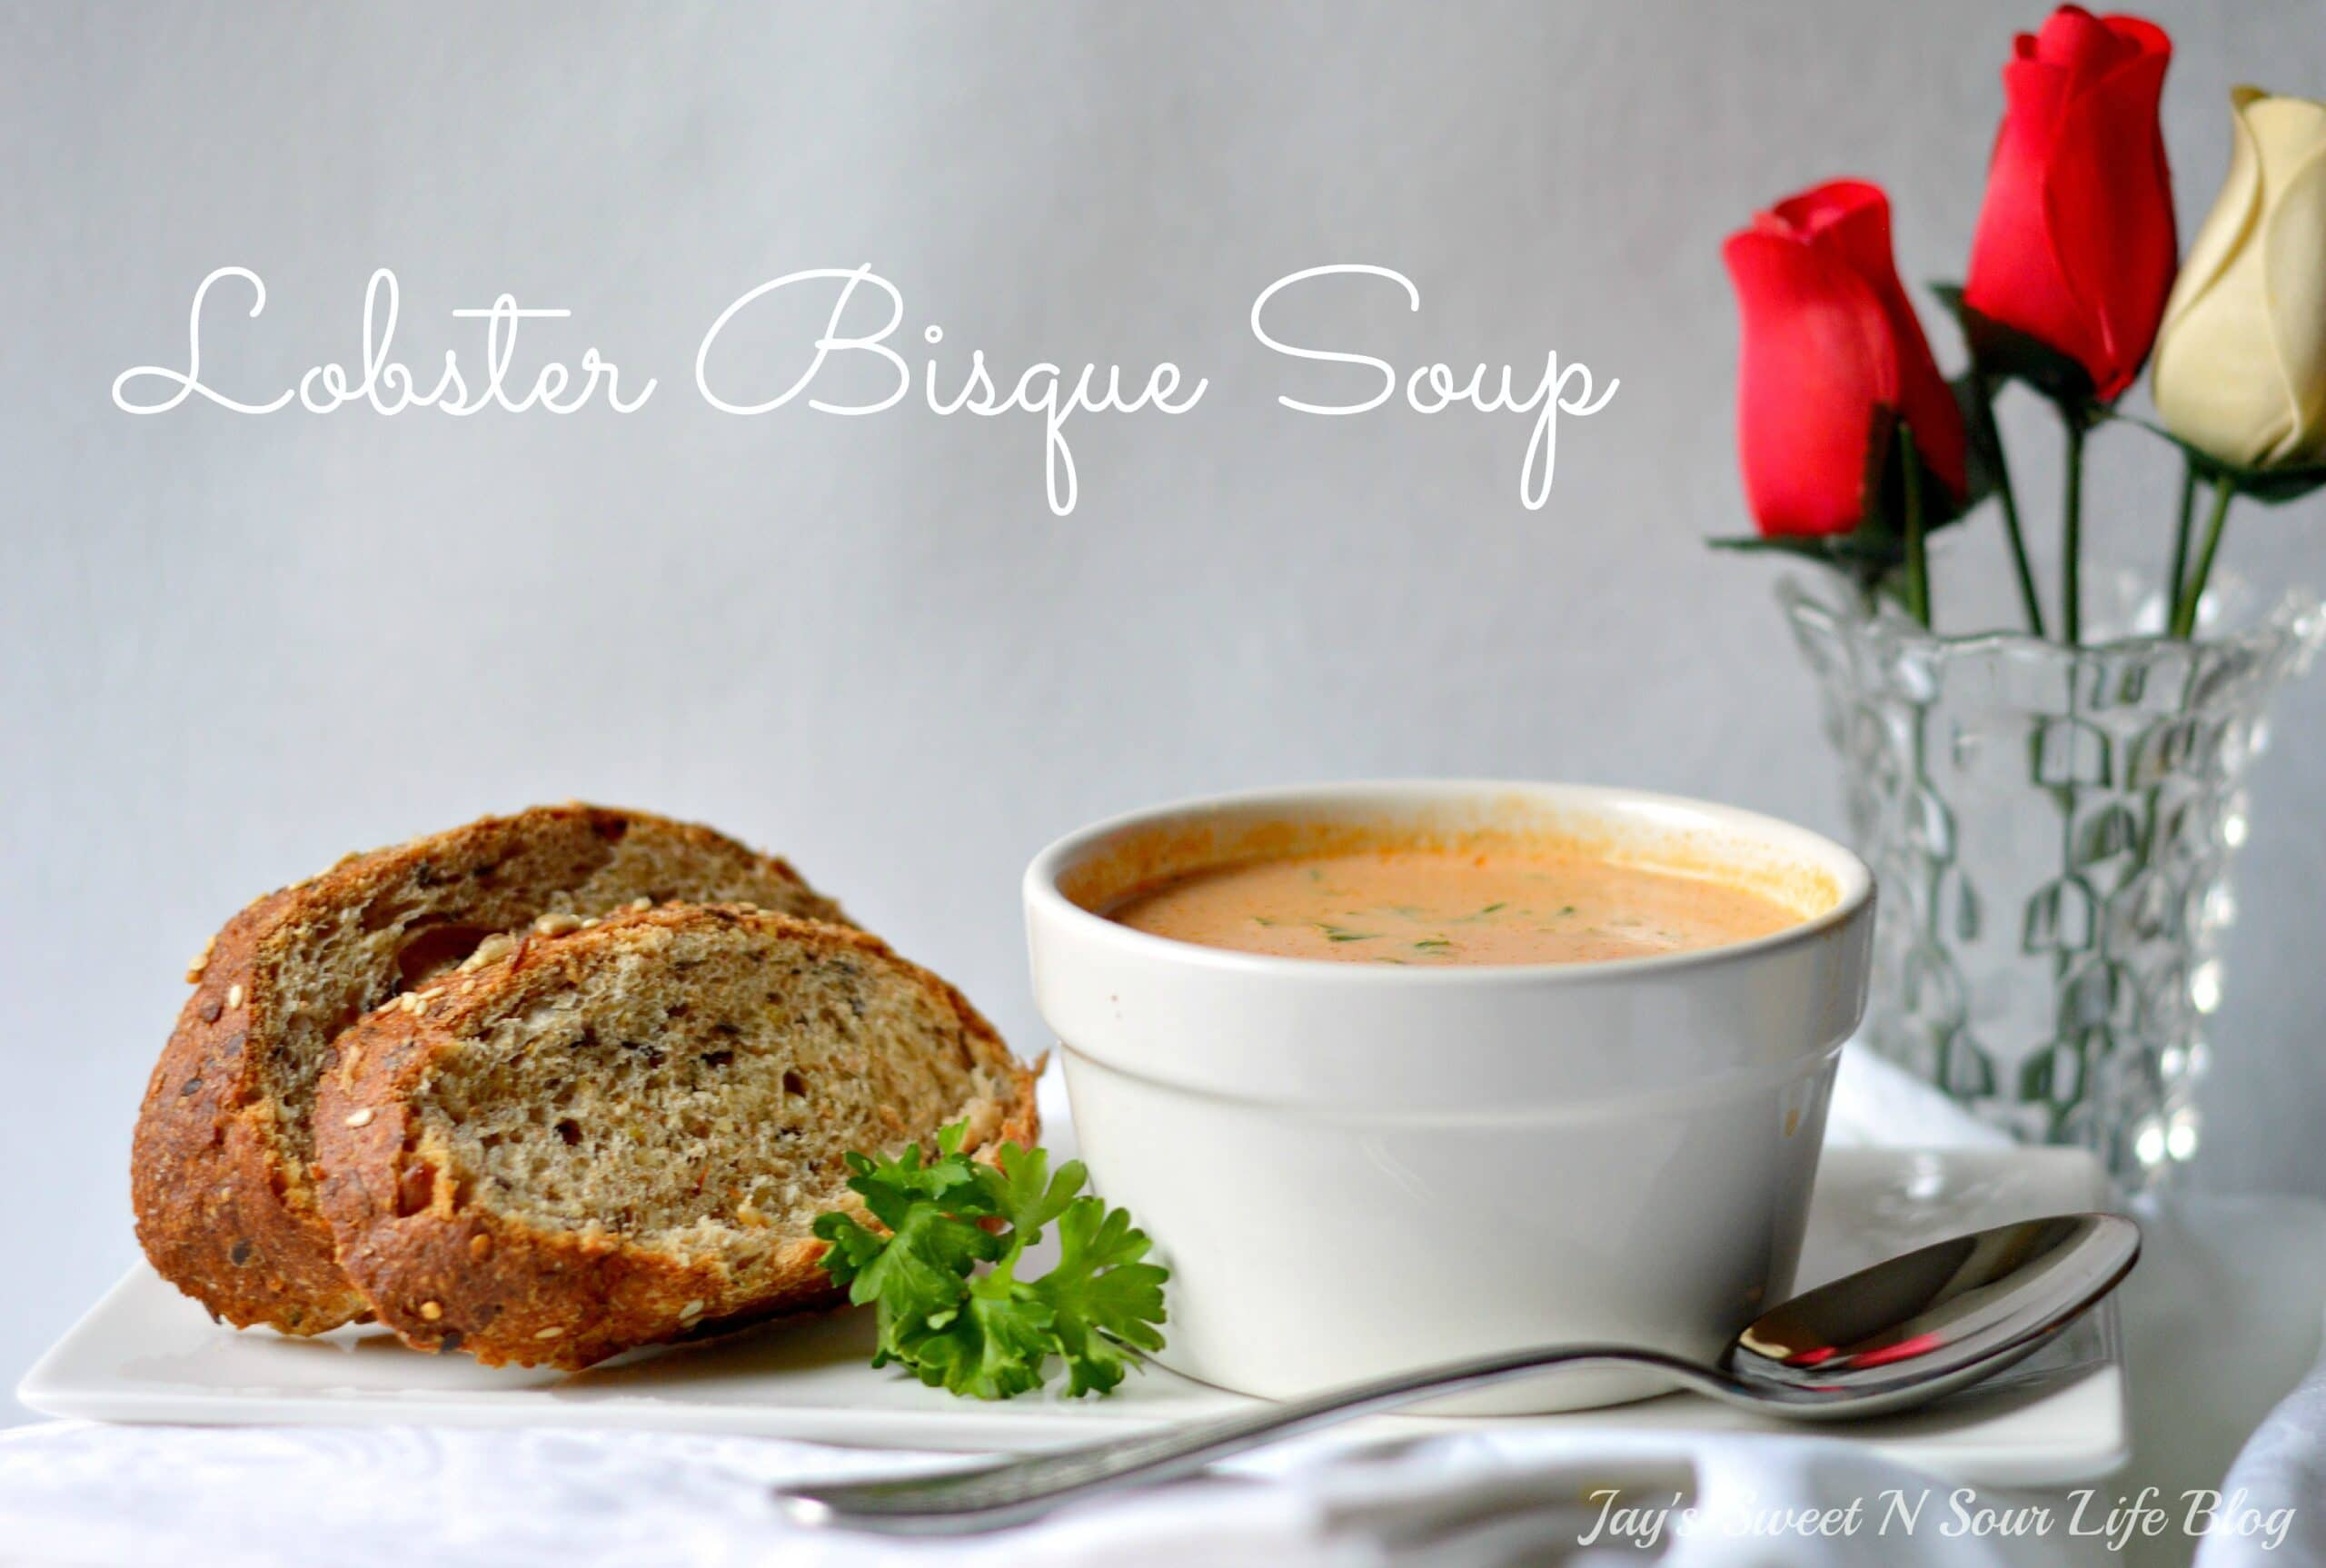 Crock-Pot Lobster Bisque Soup. A smooth and creamy Slow Cooker Lobster Bisque Soup that's always a family favorite. It's a creamy and spicy soup that uses lobster tails for a flavorful rich bisque. Your family won't believe you made this decadent soup in a crock-pot!